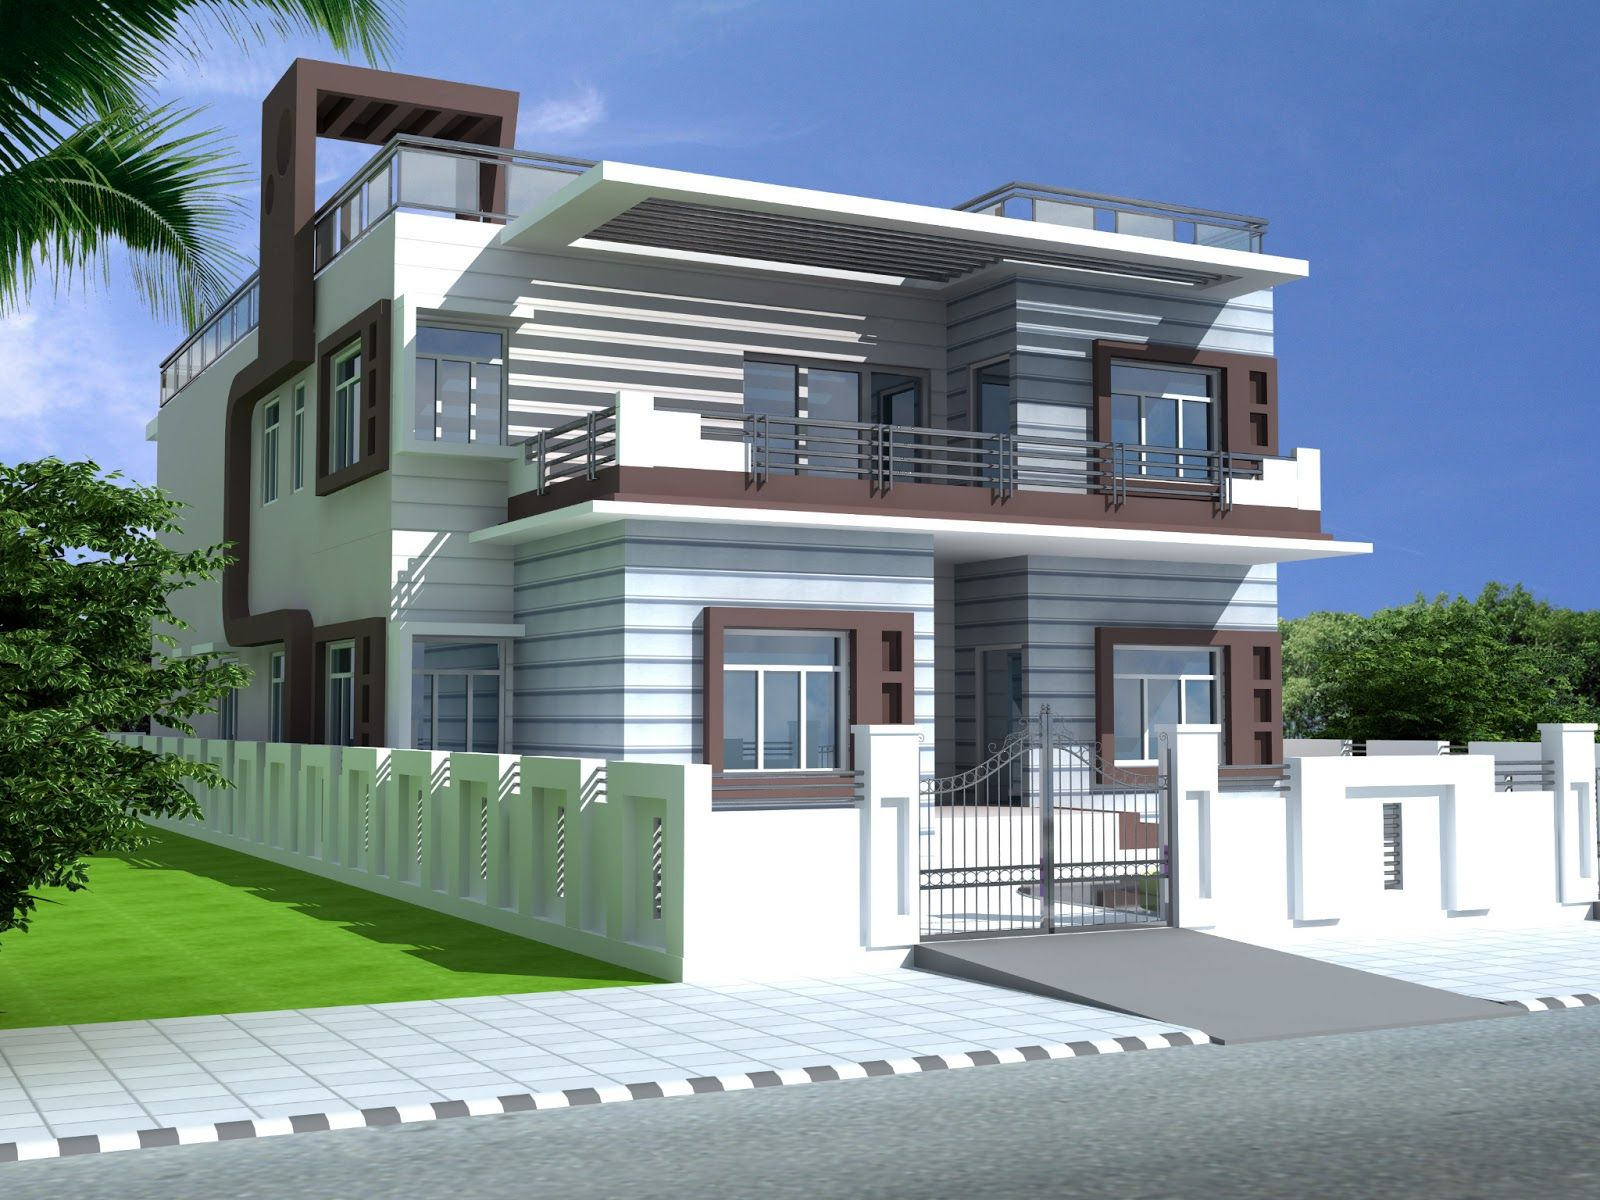 6 bedrooms duplex house design in 390m2 13m x 30m for Duplex home plan design